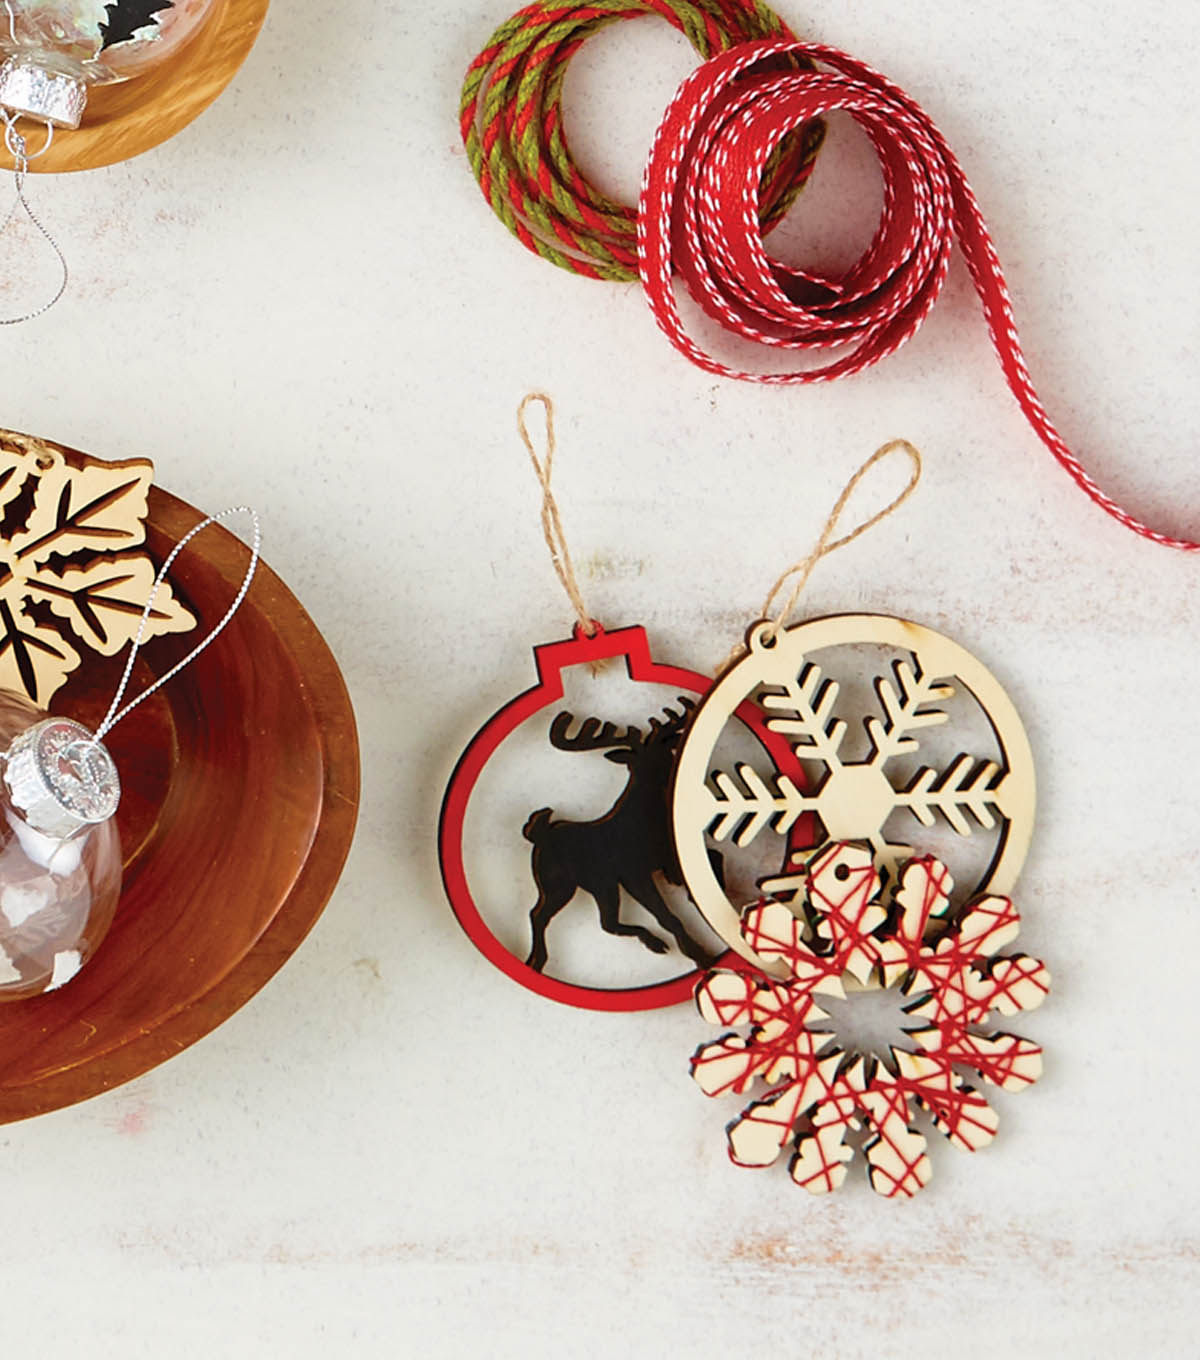 how to craft laser cut wood ornaments - Wooden Laser Cut Christmas Decorations